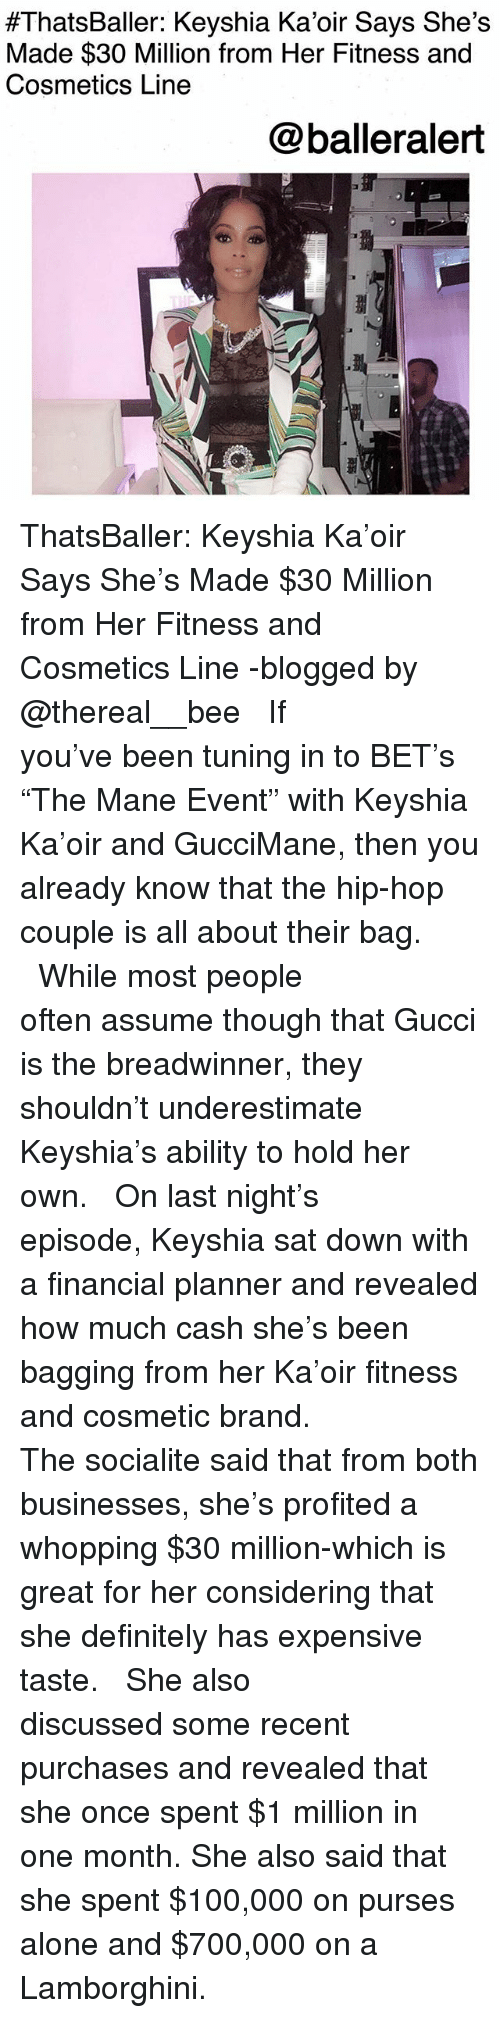 """Being Alone, Anaconda, and Definitely:  #ThatsBaller: Keyshia Kaoir Says She's  Made $30 Million from Her Fitness and  Cosmetics Line  @balleralert ThatsBaller: Keyshia Ka'oir Says She's Made $30 Million from Her Fitness and Cosmetics Line -blogged by @thereal__bee ⠀⠀⠀⠀⠀⠀⠀⠀⠀ ⠀⠀ If you've been tuning in to BET's """"The Mane Event"""" with Keyshia Ka'oir and GucciMane, then you already know that the hip-hop couple is all about their bag. ⠀⠀⠀⠀⠀⠀⠀⠀⠀ ⠀⠀ While most people often assume though that Gucci is the breadwinner, they shouldn't underestimate Keyshia's ability to hold her own. ⠀⠀⠀⠀⠀⠀⠀⠀⠀ ⠀⠀ On last night's episode, Keyshia sat down with a financial planner and revealed how much cash she's been bagging from her Ka'oir fitness and cosmetic brand. ⠀⠀⠀⠀⠀⠀⠀⠀⠀ ⠀⠀ The socialite said that from both businesses, she's profited a whopping $30 million-which is great for her considering that she definitely has expensive taste. ⠀⠀⠀⠀⠀⠀⠀⠀⠀ ⠀⠀ She also discussed some recent purchases and revealed that she once spent $1 million in one month. She also said that she spent $100,000 on purses alone and $700,000 on a Lamborghini."""